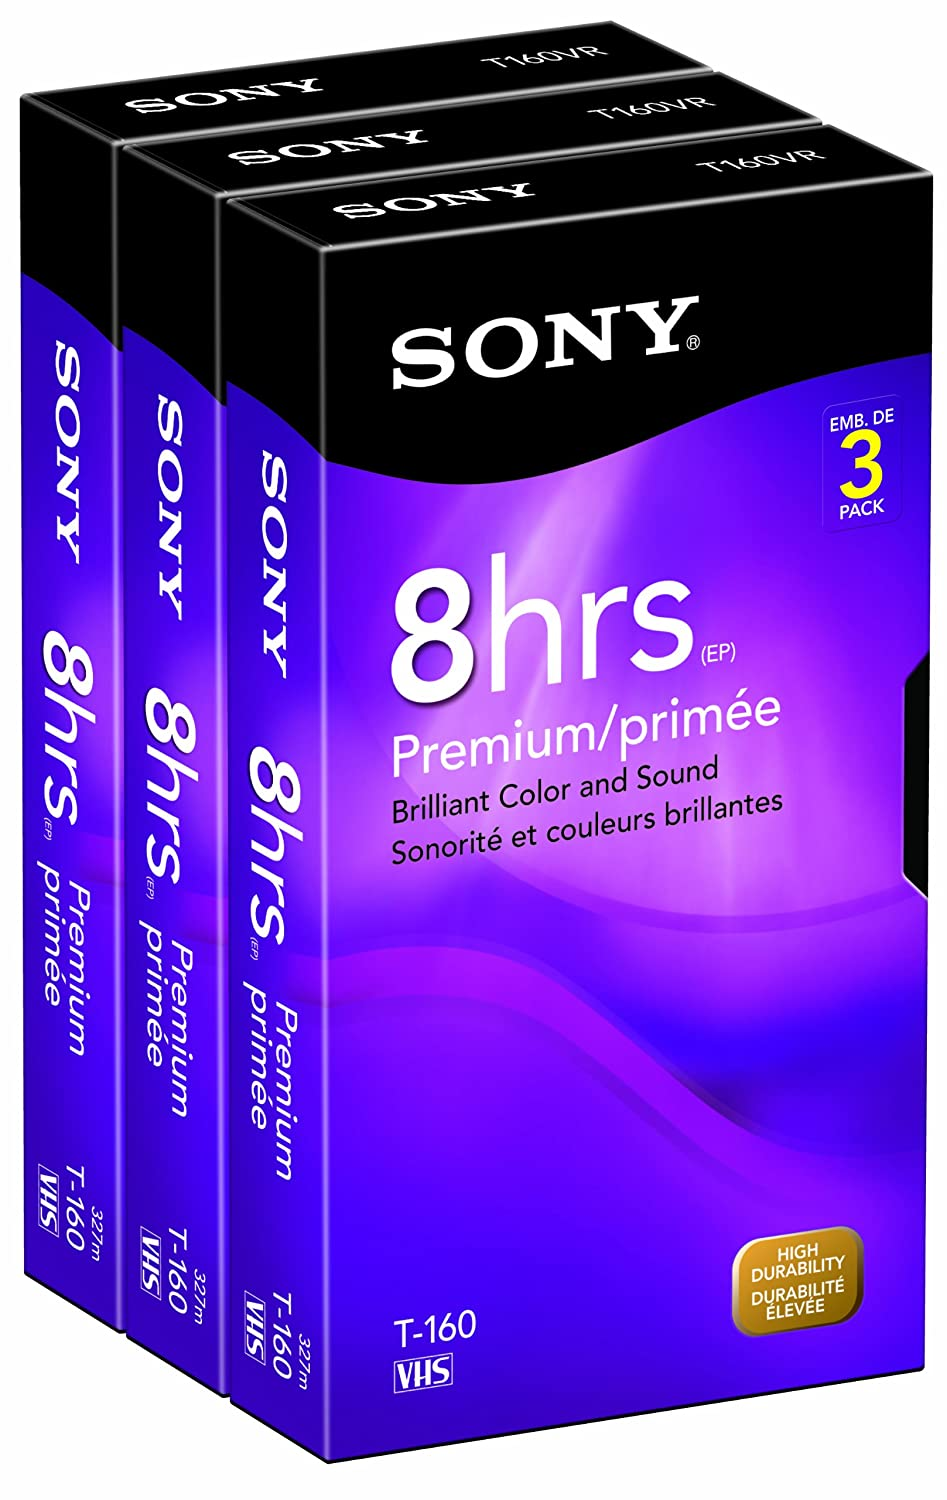 Sony 3T160VR 160-Minute VHS - 3 Pack (Discontinued by Manufacturer)